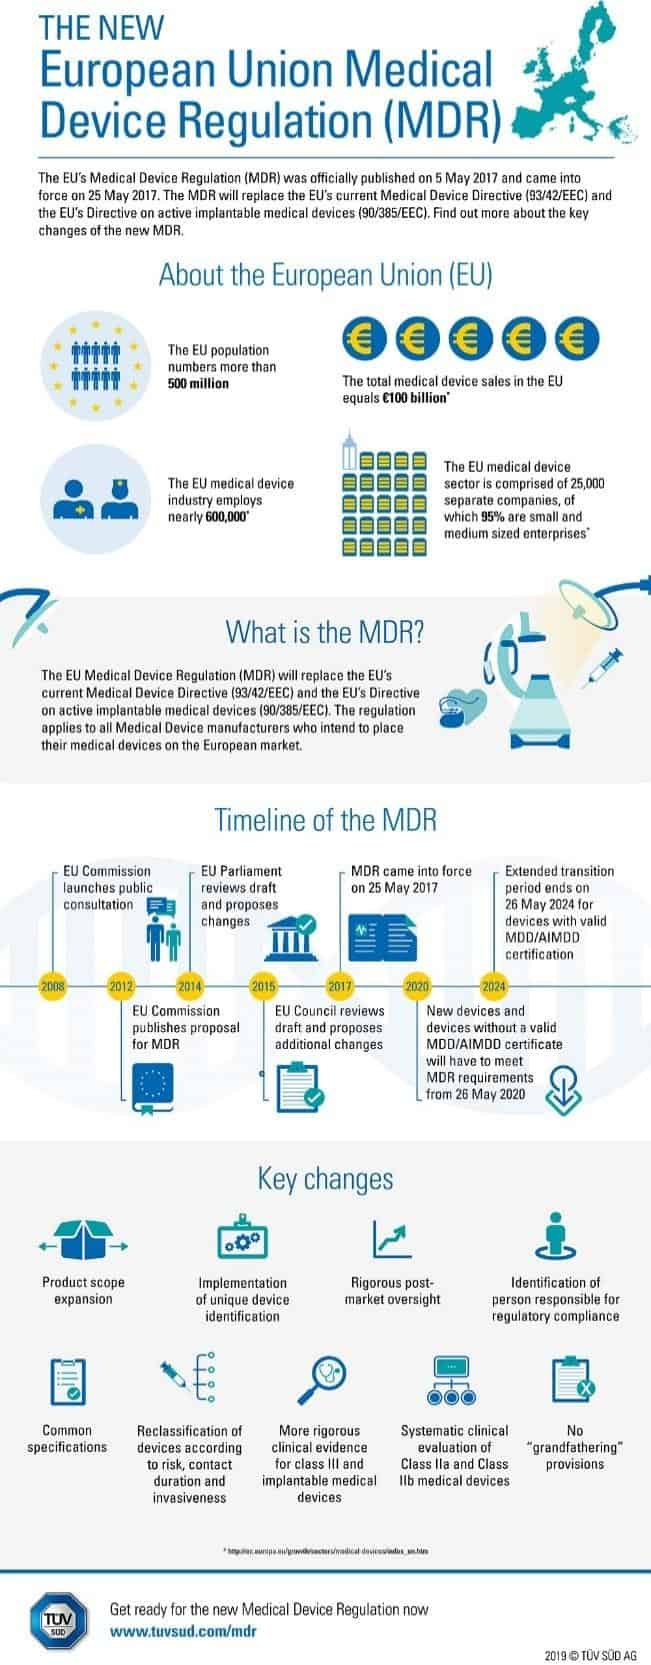 Infographic showing overview over EU MDR, their timeline and key changes